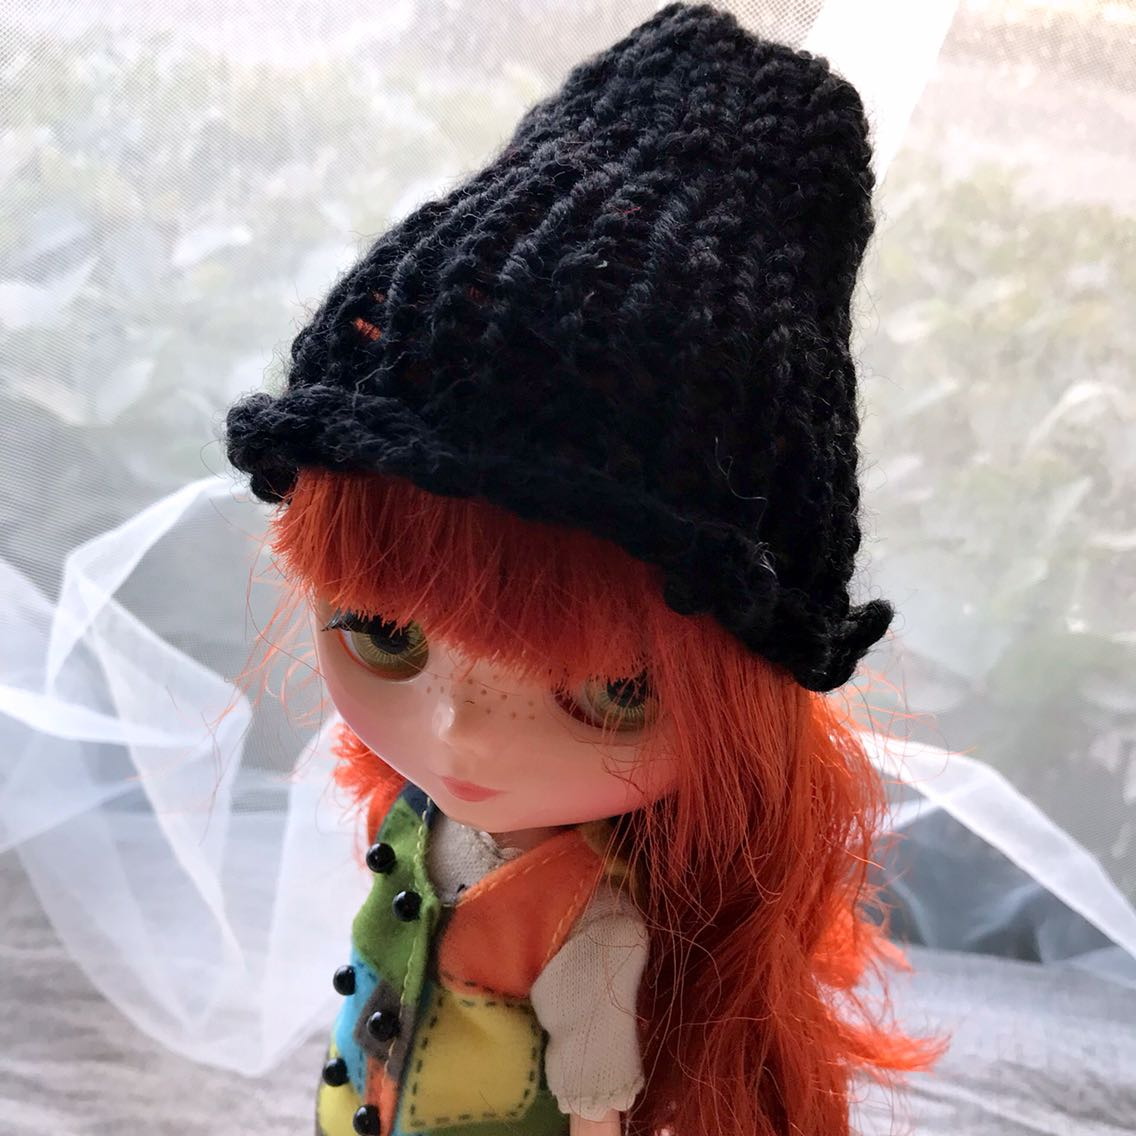 BJD dolls special area ball joint doll 6 points SD baby Blythe little cloth baby dress wool hat black